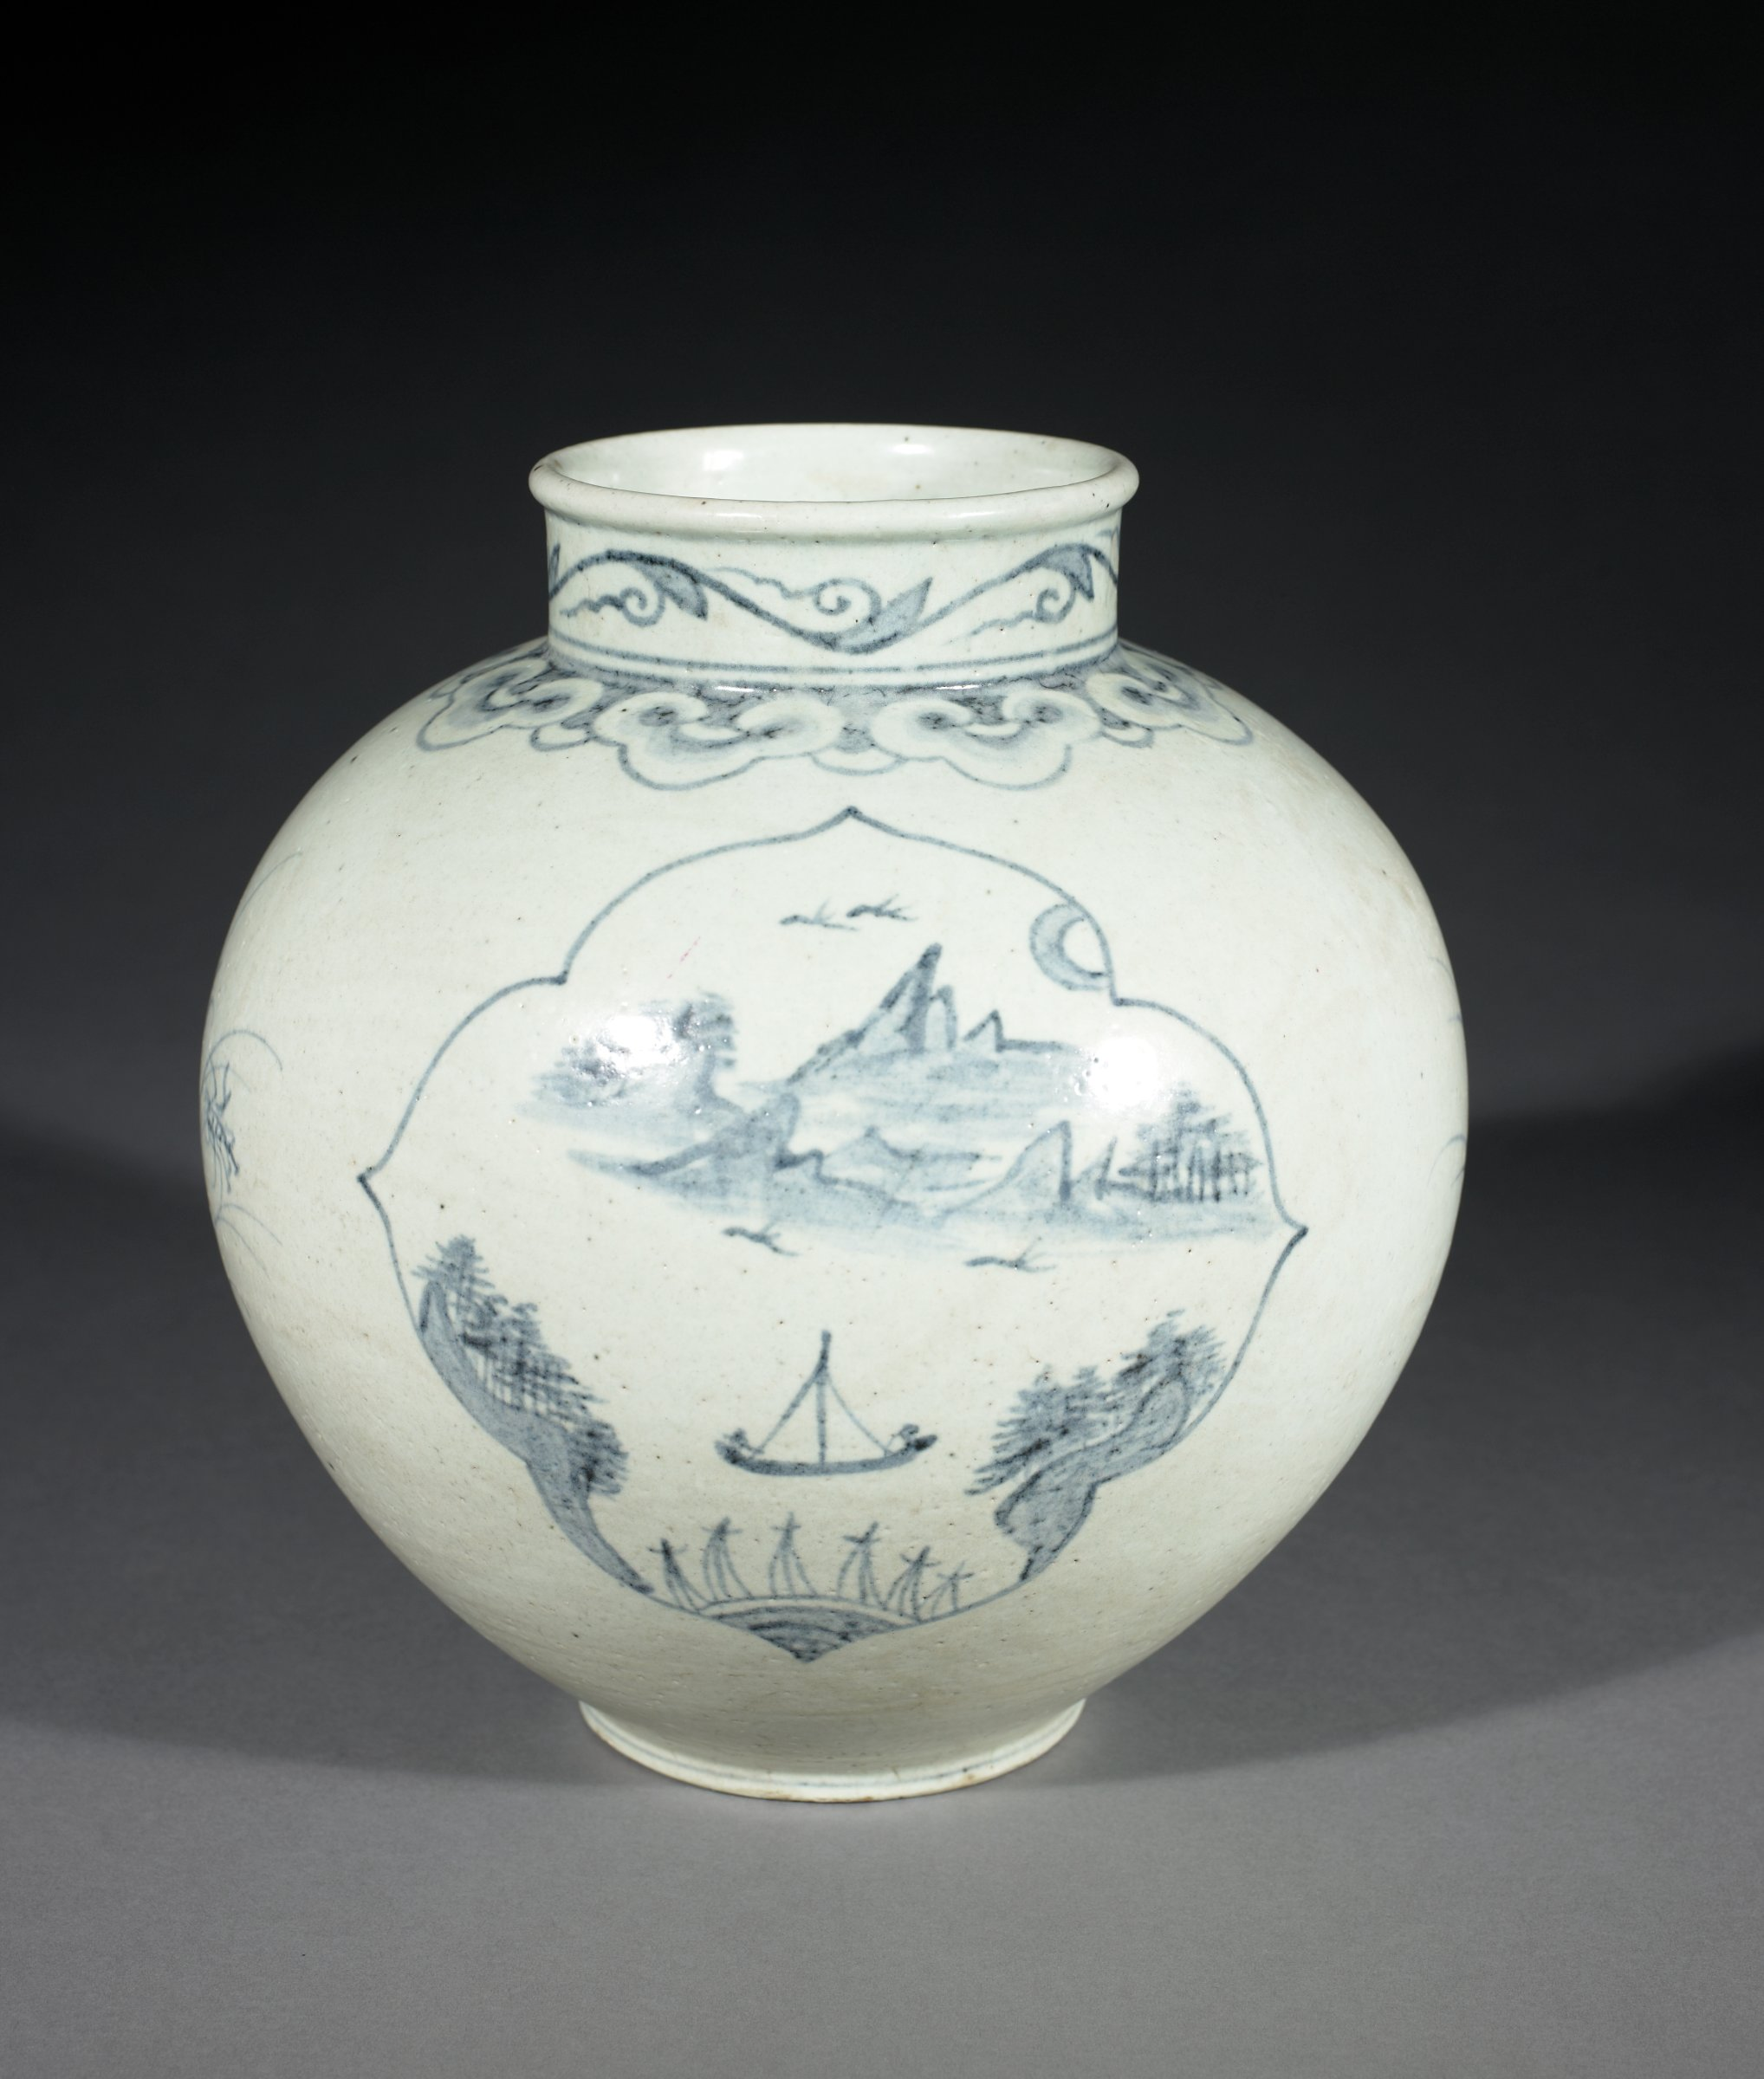 Moon Jar with Vine and Cloud Collar and Maritime Motifs including sail boats and possible moon viewing scenes.